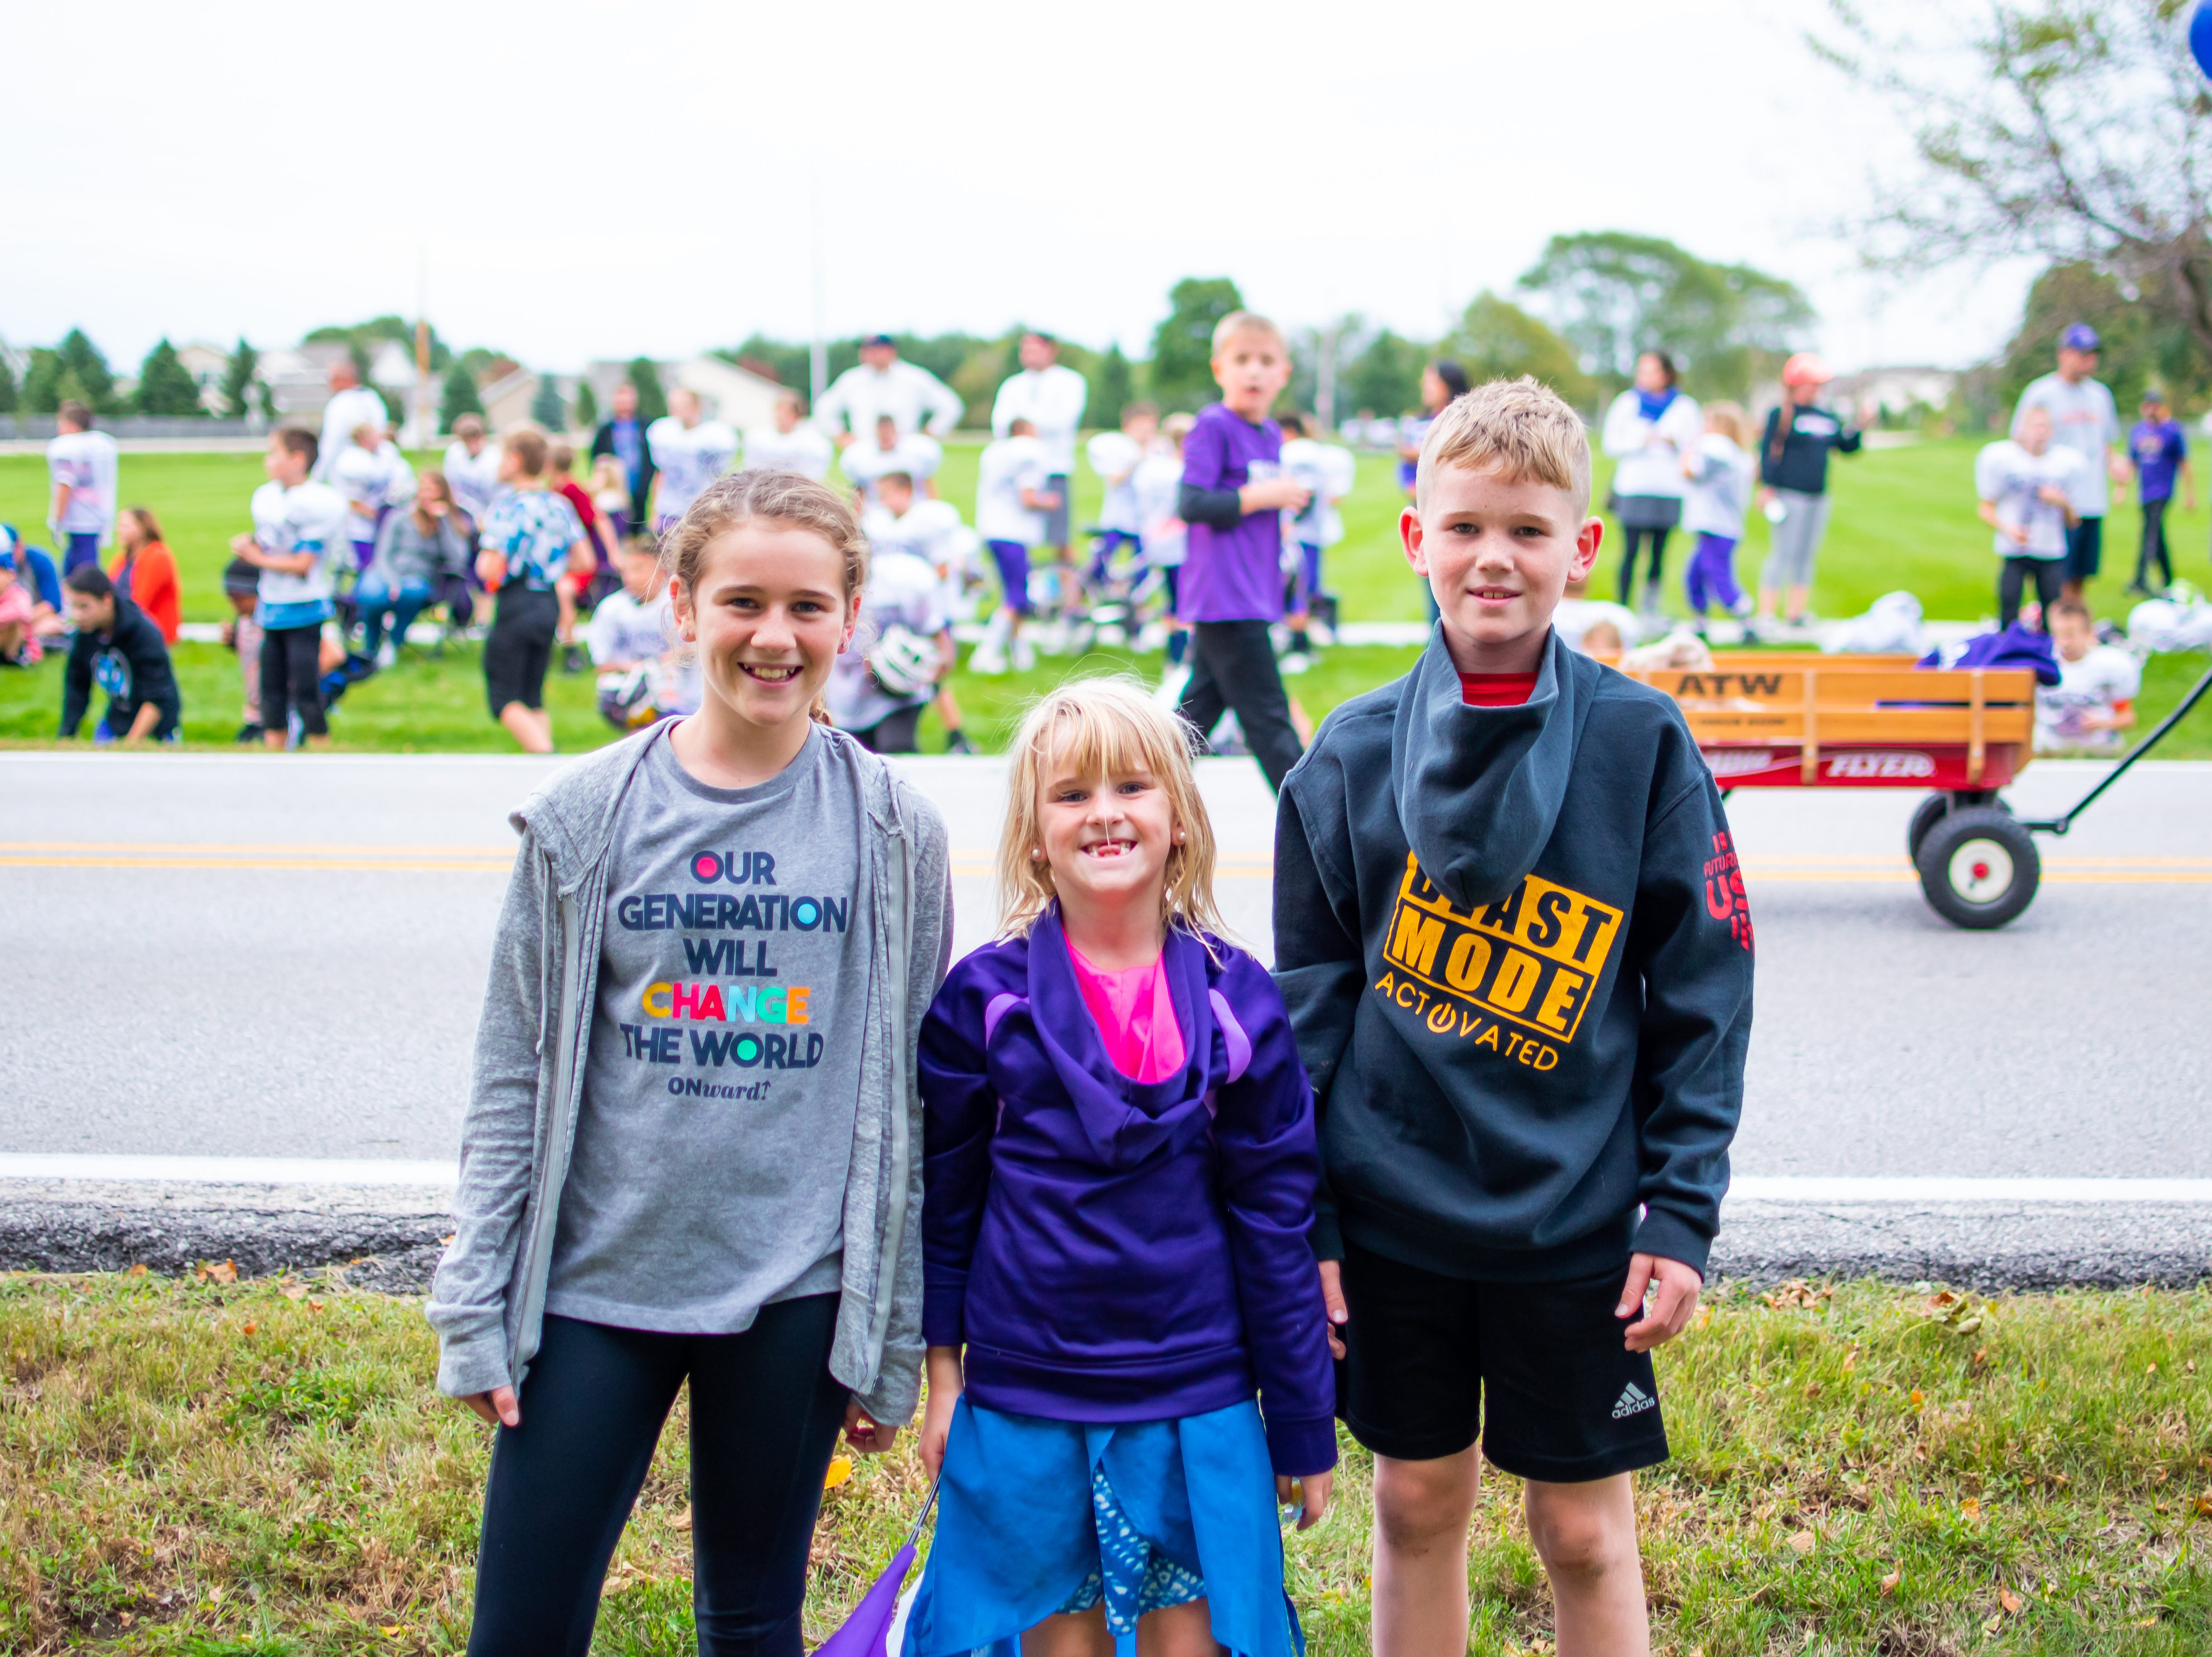 Lili, 12, Maggie, 7, and Tate Boyd, 10, all of Waukee enjoy all the excitement of the Waukee Homecoming Parade on Thursday, September 27, 2018 in Waukee.